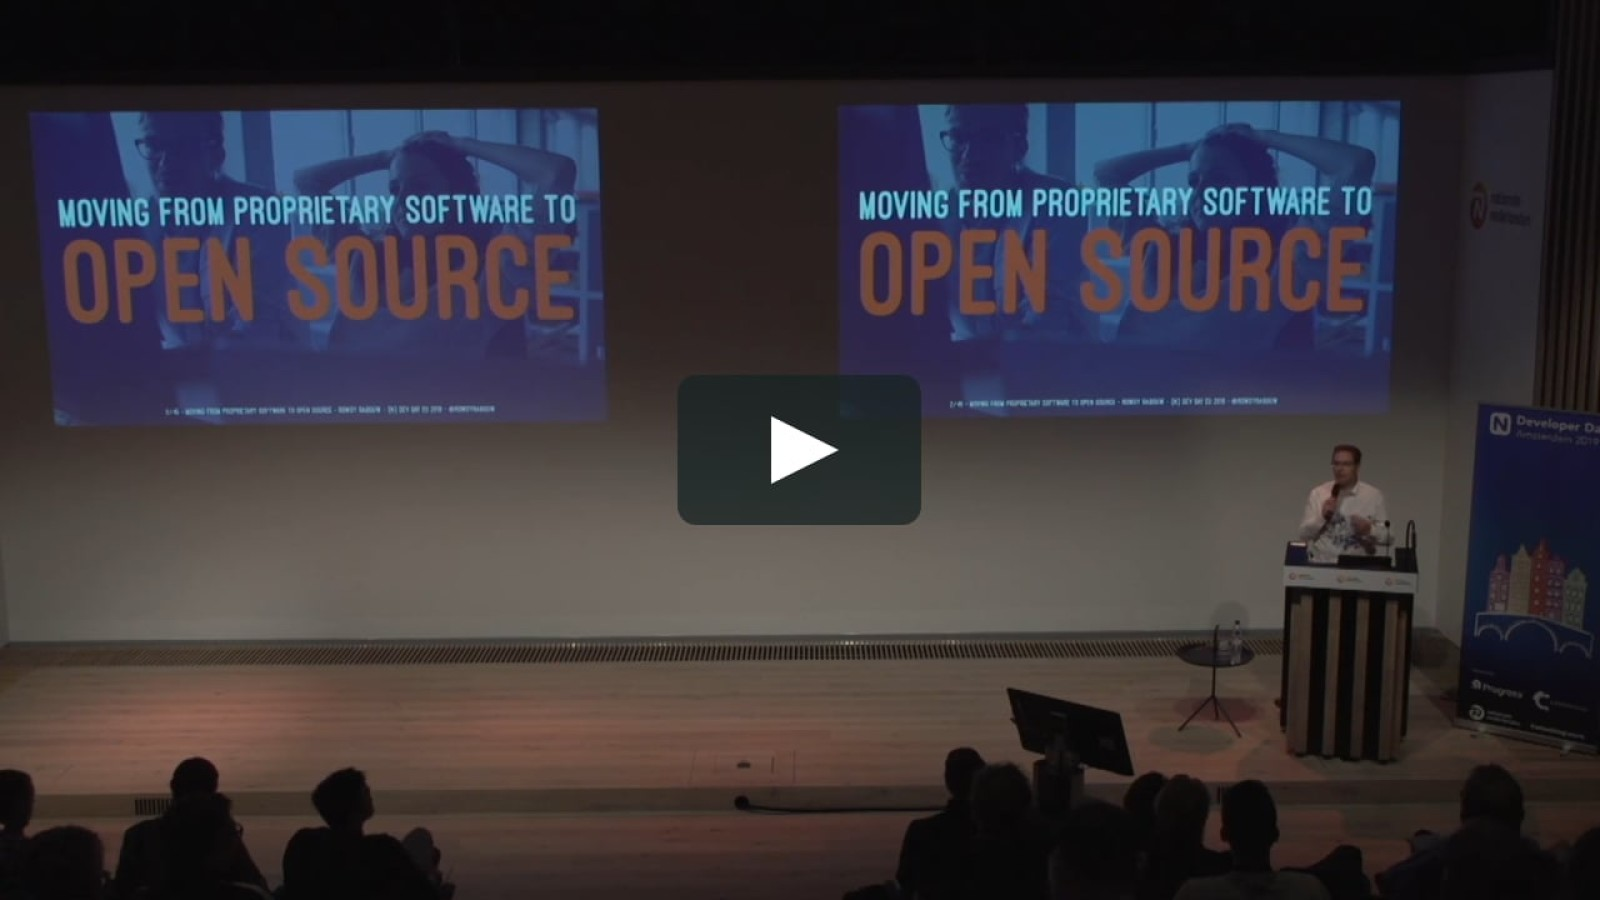 Moving from Proprietary Software to Open Source